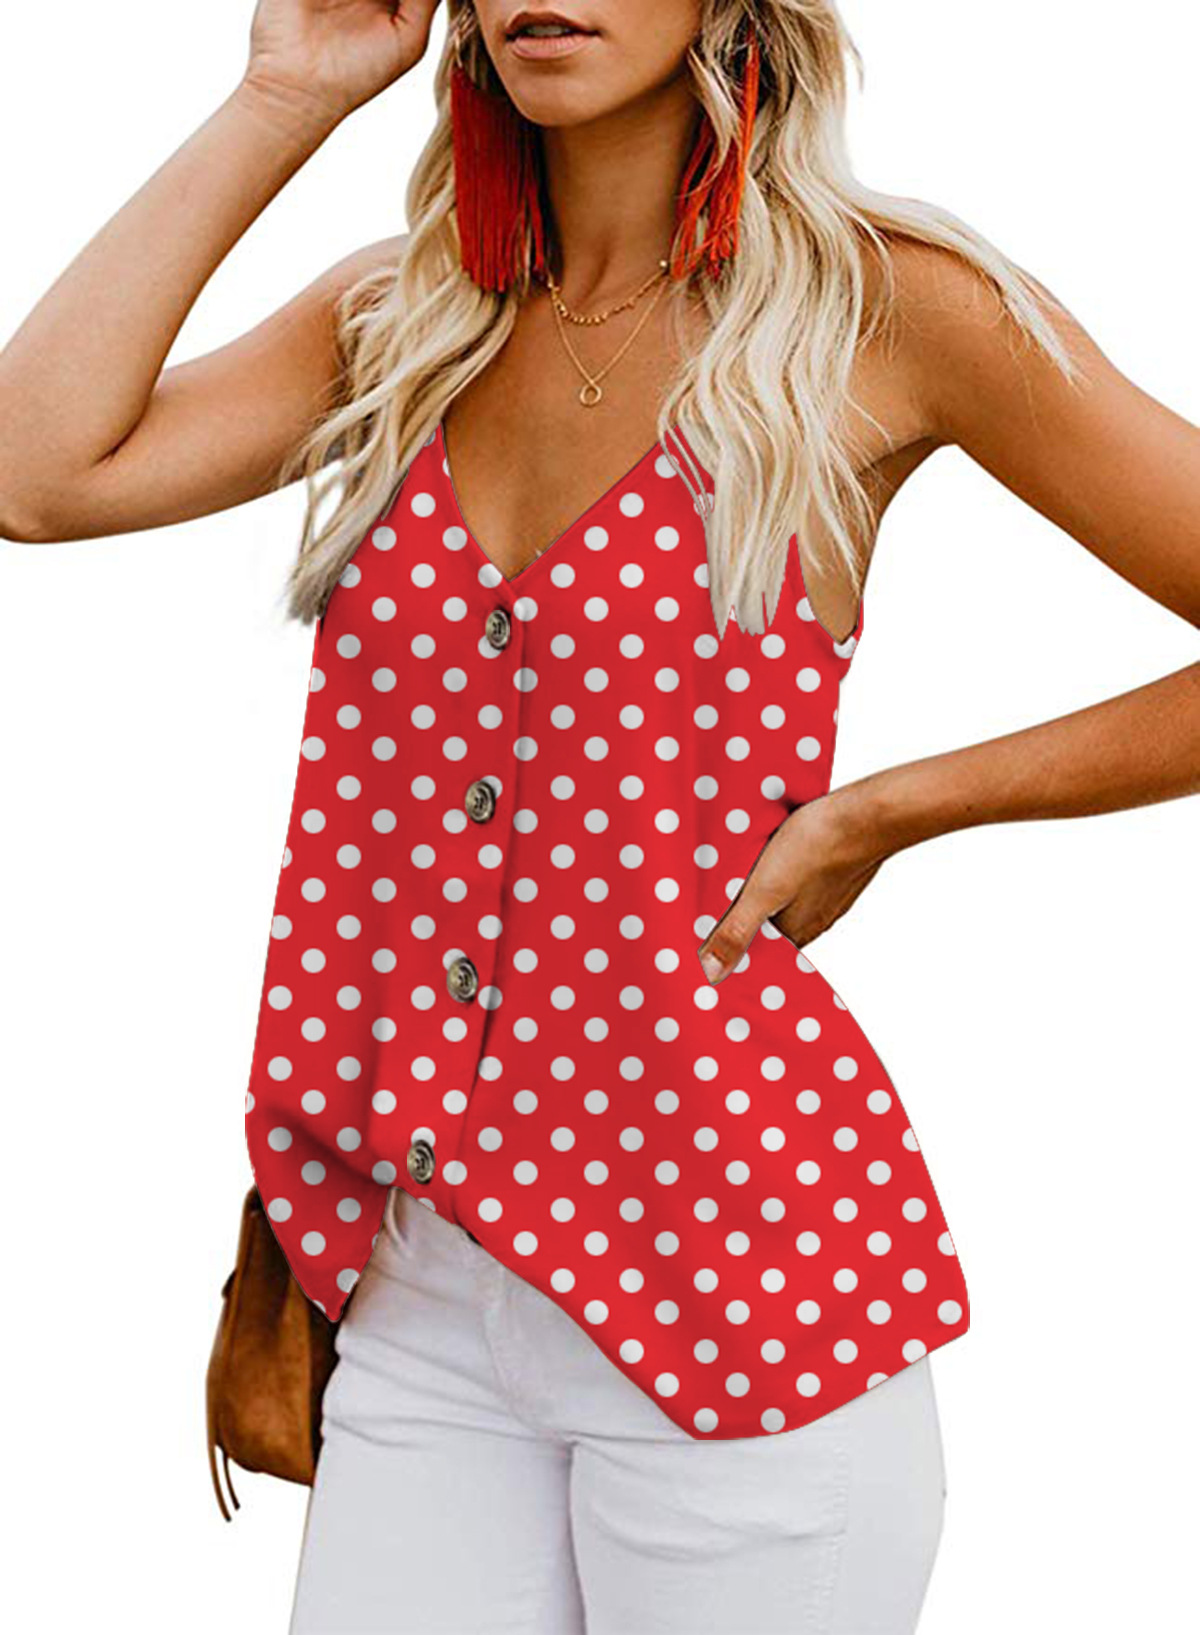 Sexy Polka Dot Short Tops Women Camis 2019 Fashion V Neck Sweet Ladies Strap Blouses Casual Blusas Mujer in Camis from Women 39 s Clothing